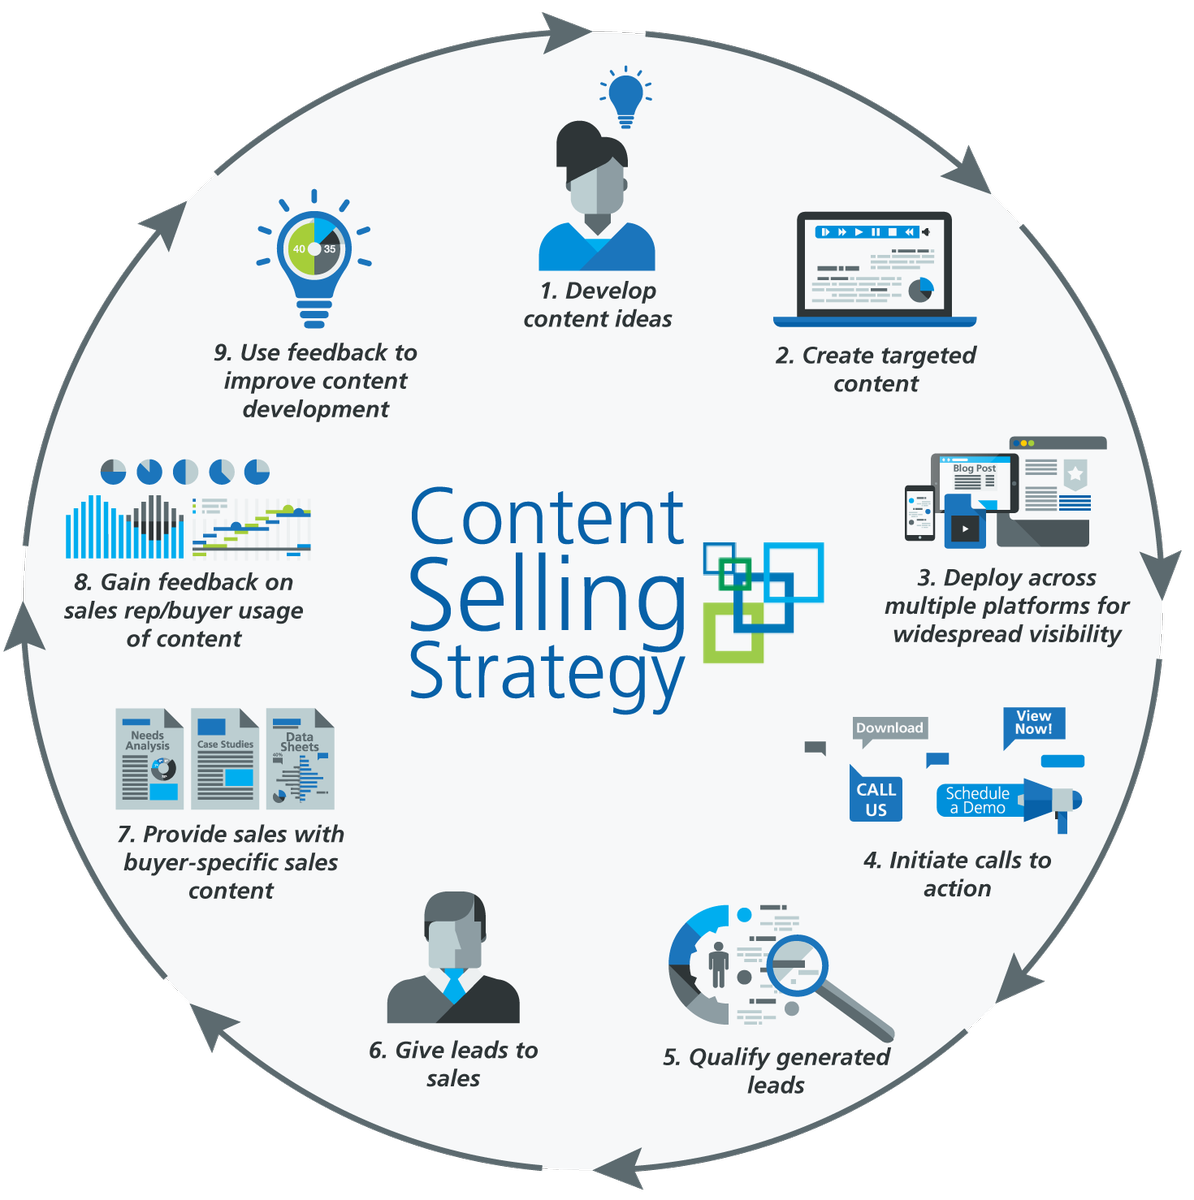 A Successful #ContentMarketing: The Content Selling Strategy Cycle [Infographic]  #Marketing #GrowthHacking #DigitalMarketing<br>http://pic.twitter.com/MCvUDIBxMk